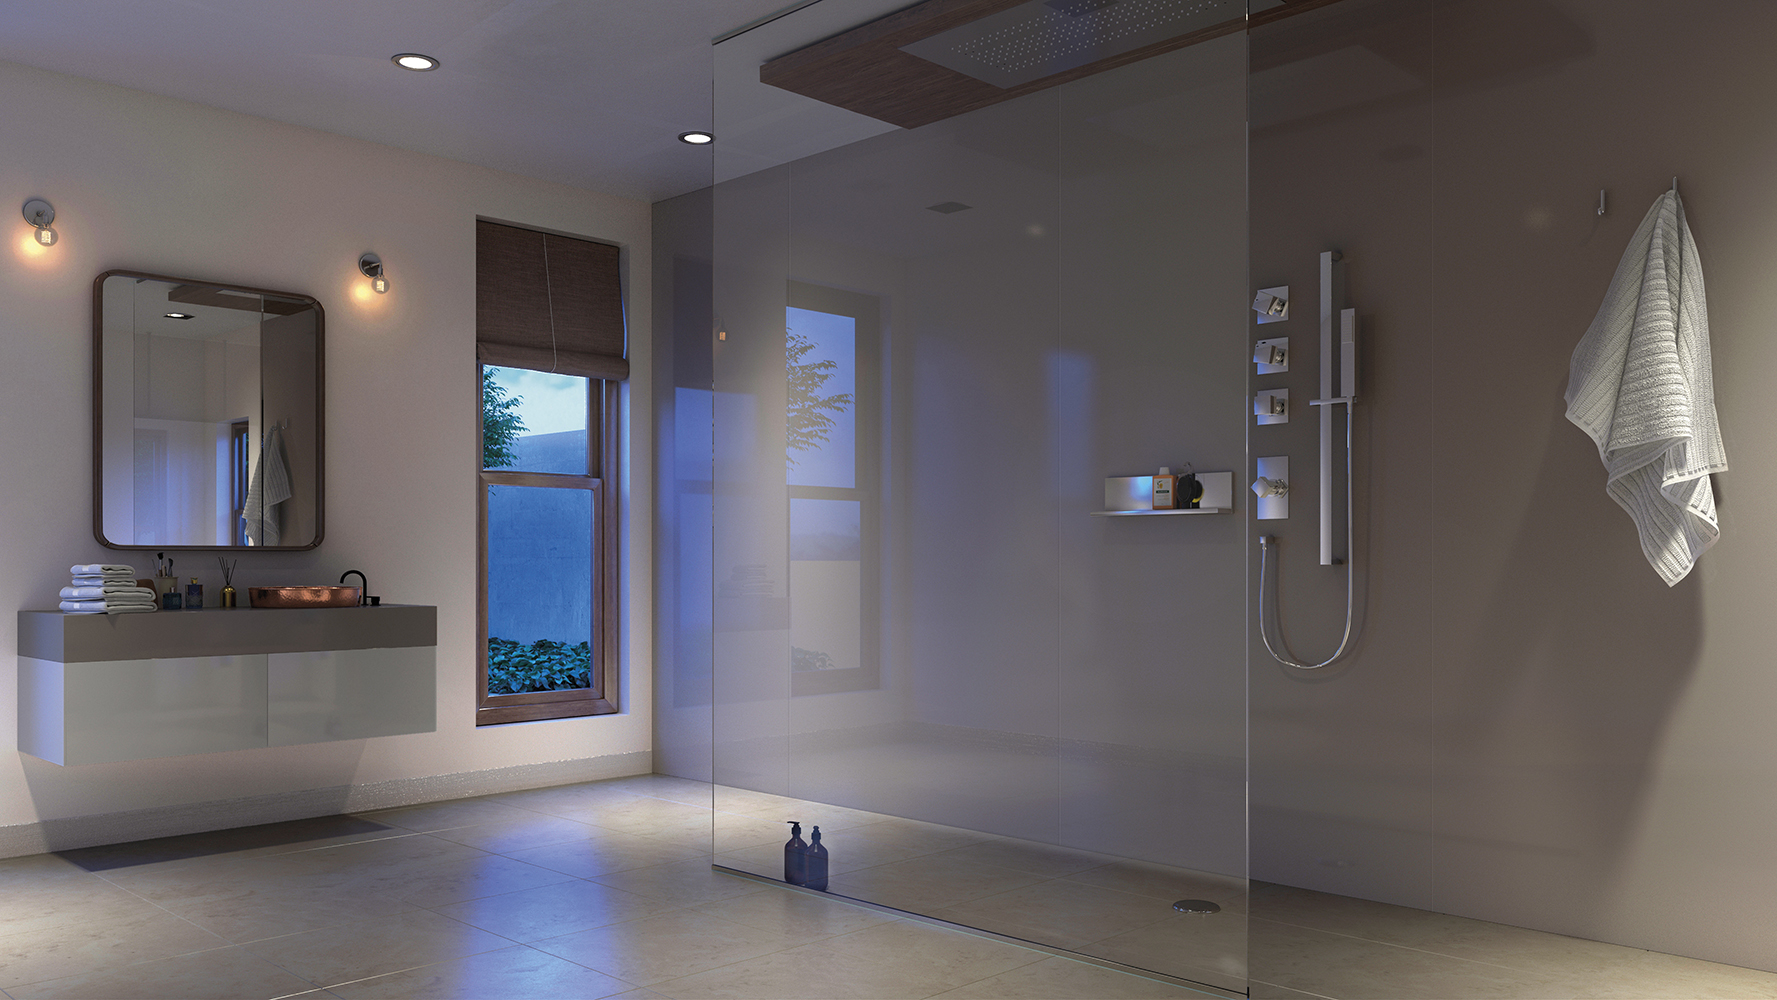 Mocha Showerwall panel in a clean modern bathroom from the Acrylic Collection